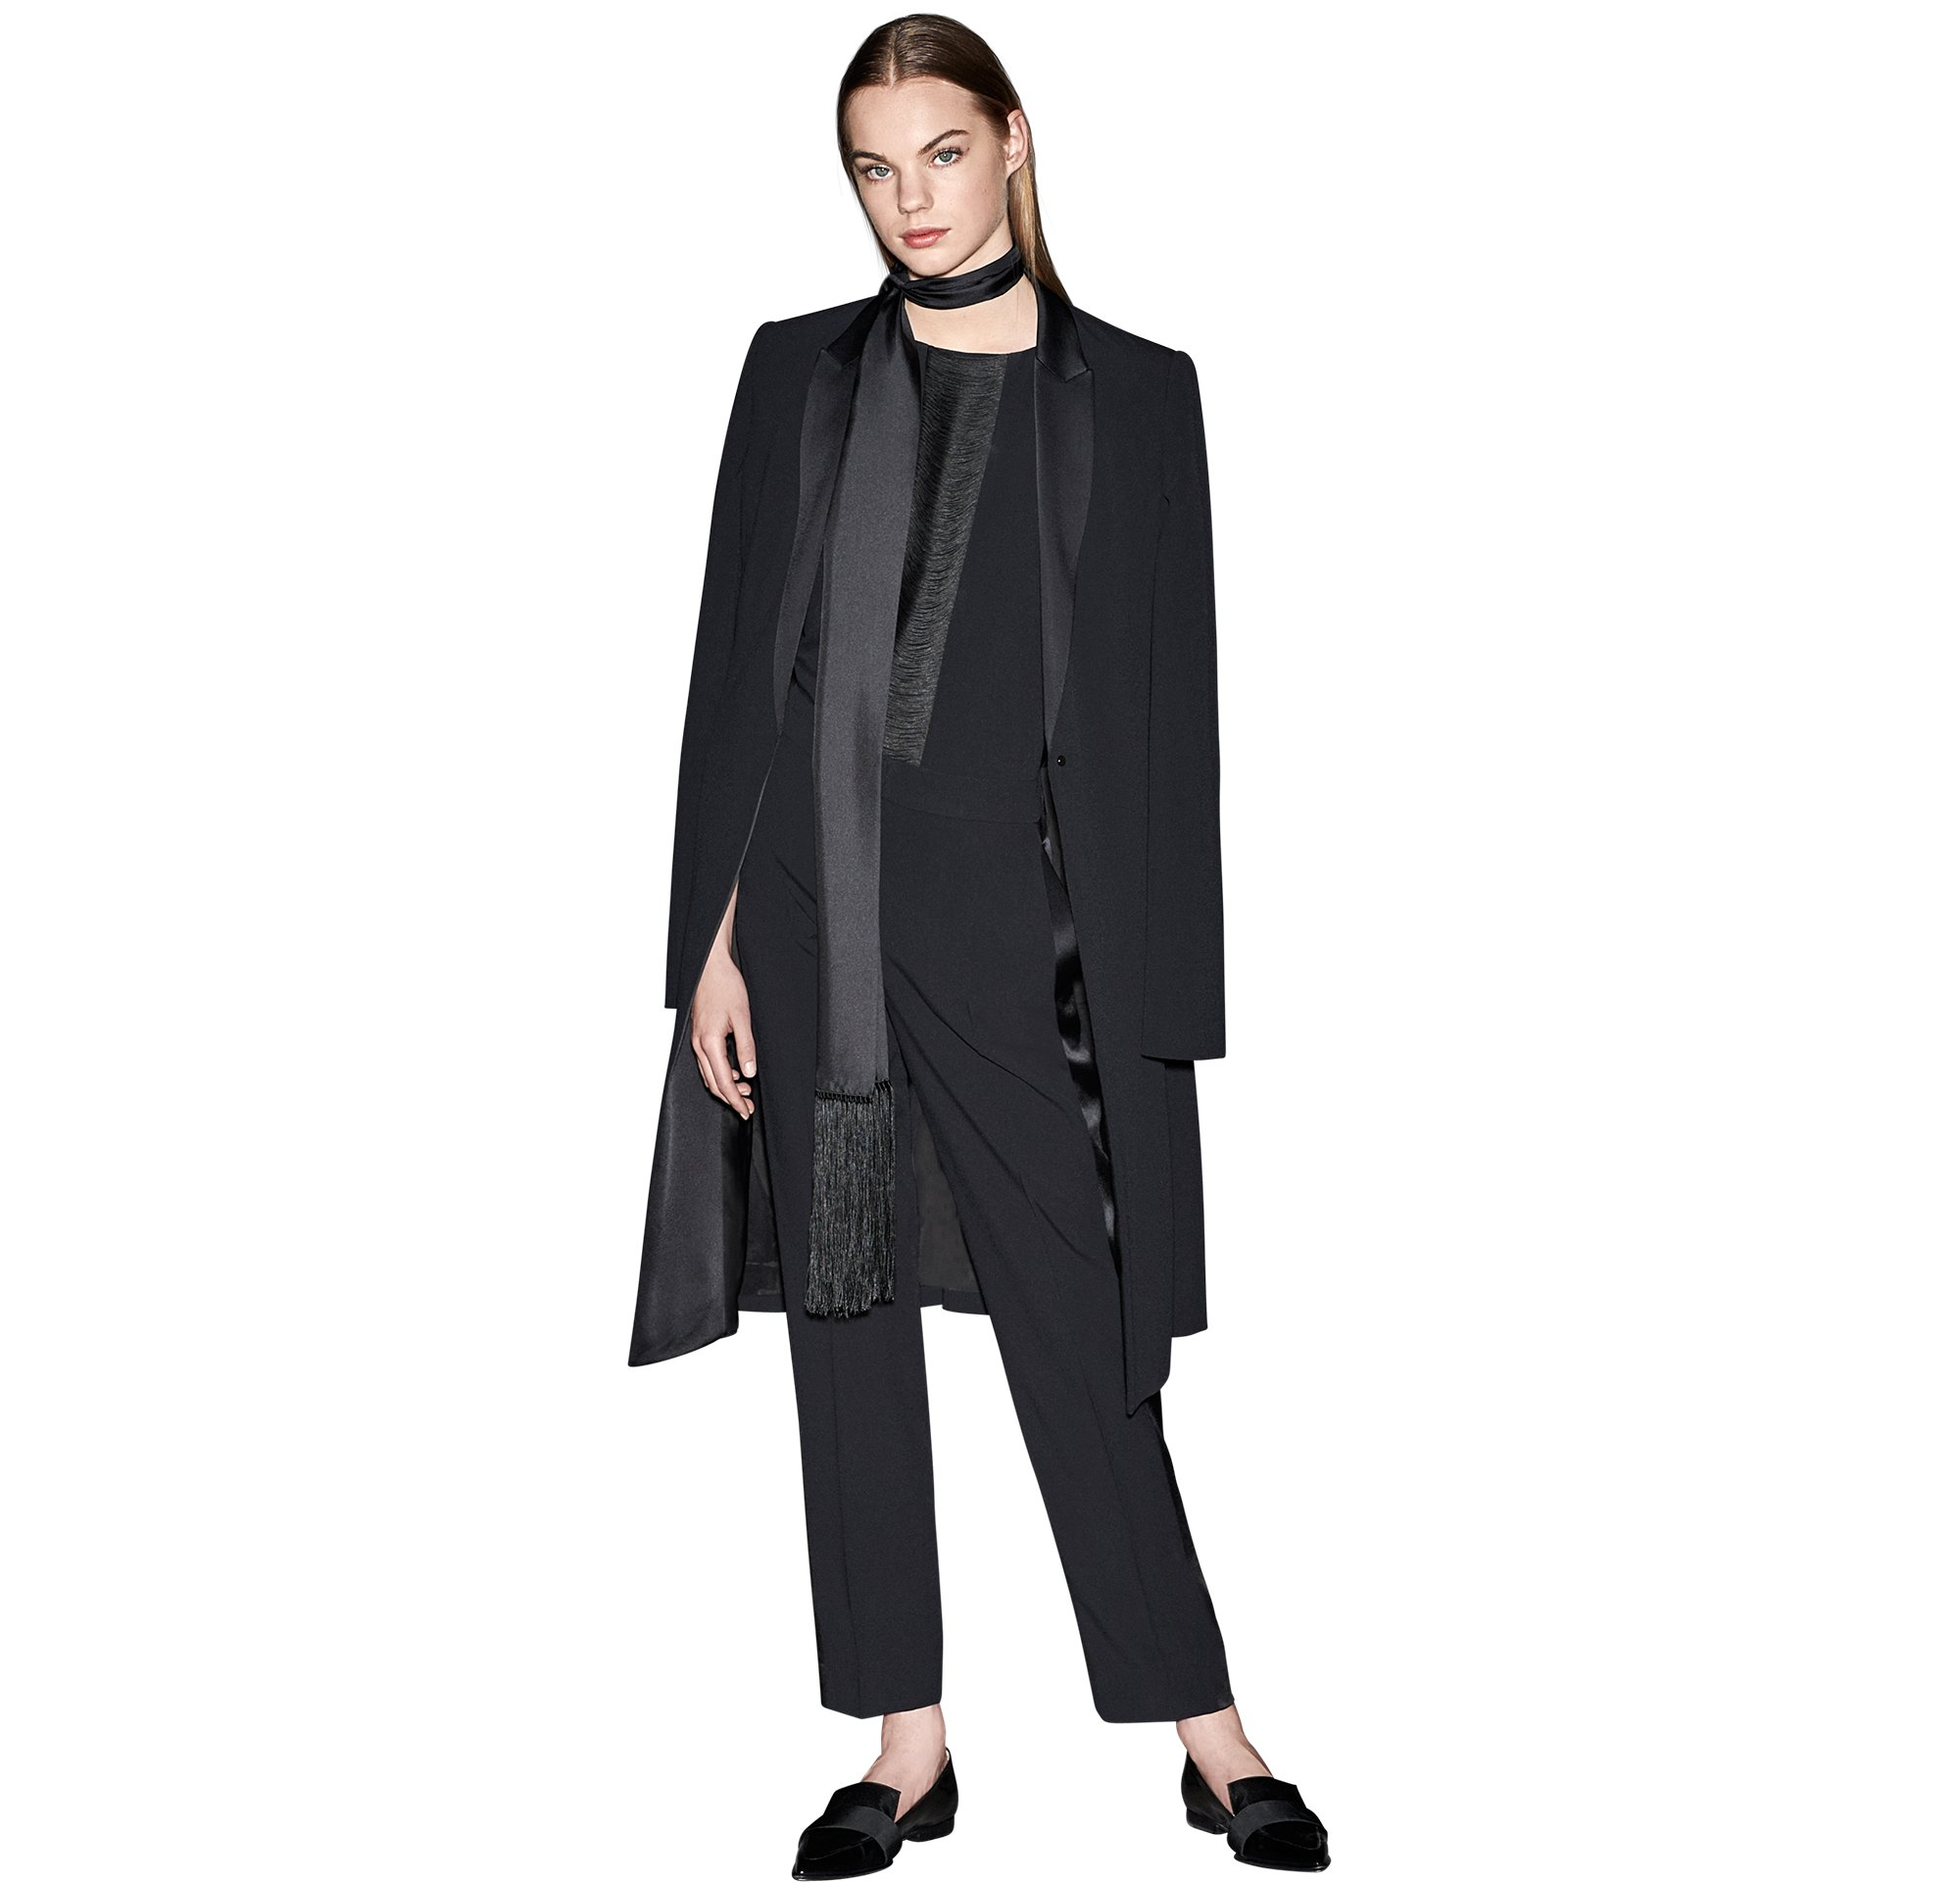 Black coat over black top and black trousers with a black scarf and black shoes by BOSS